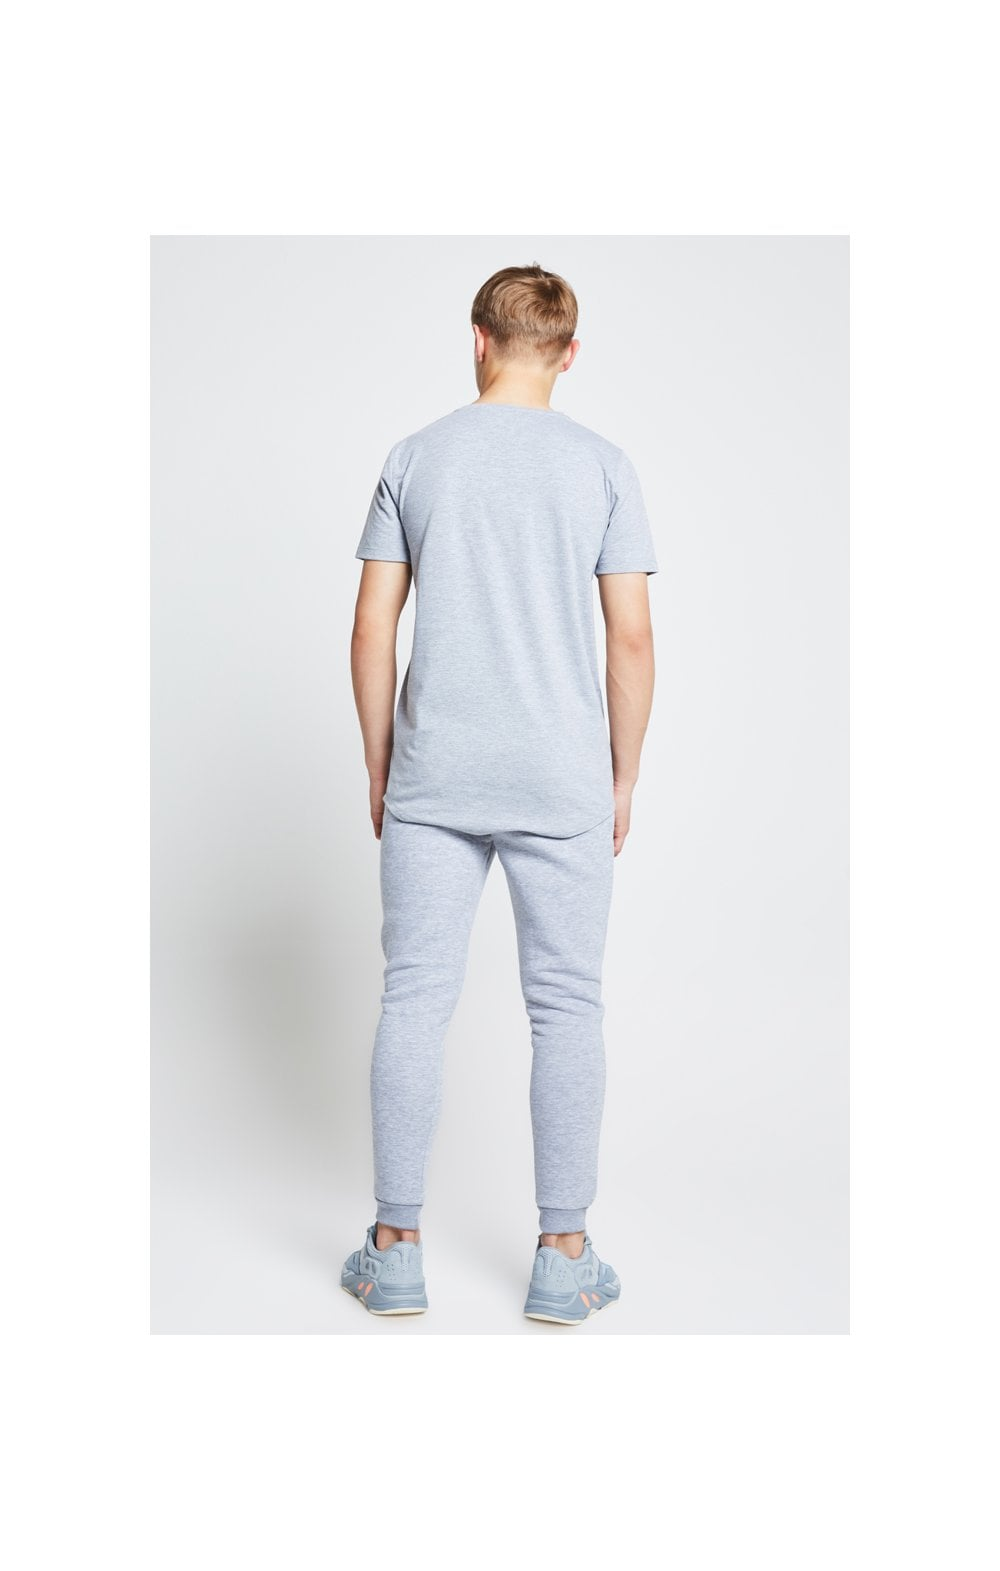 Illusive London Tee – Grey Marl (6)